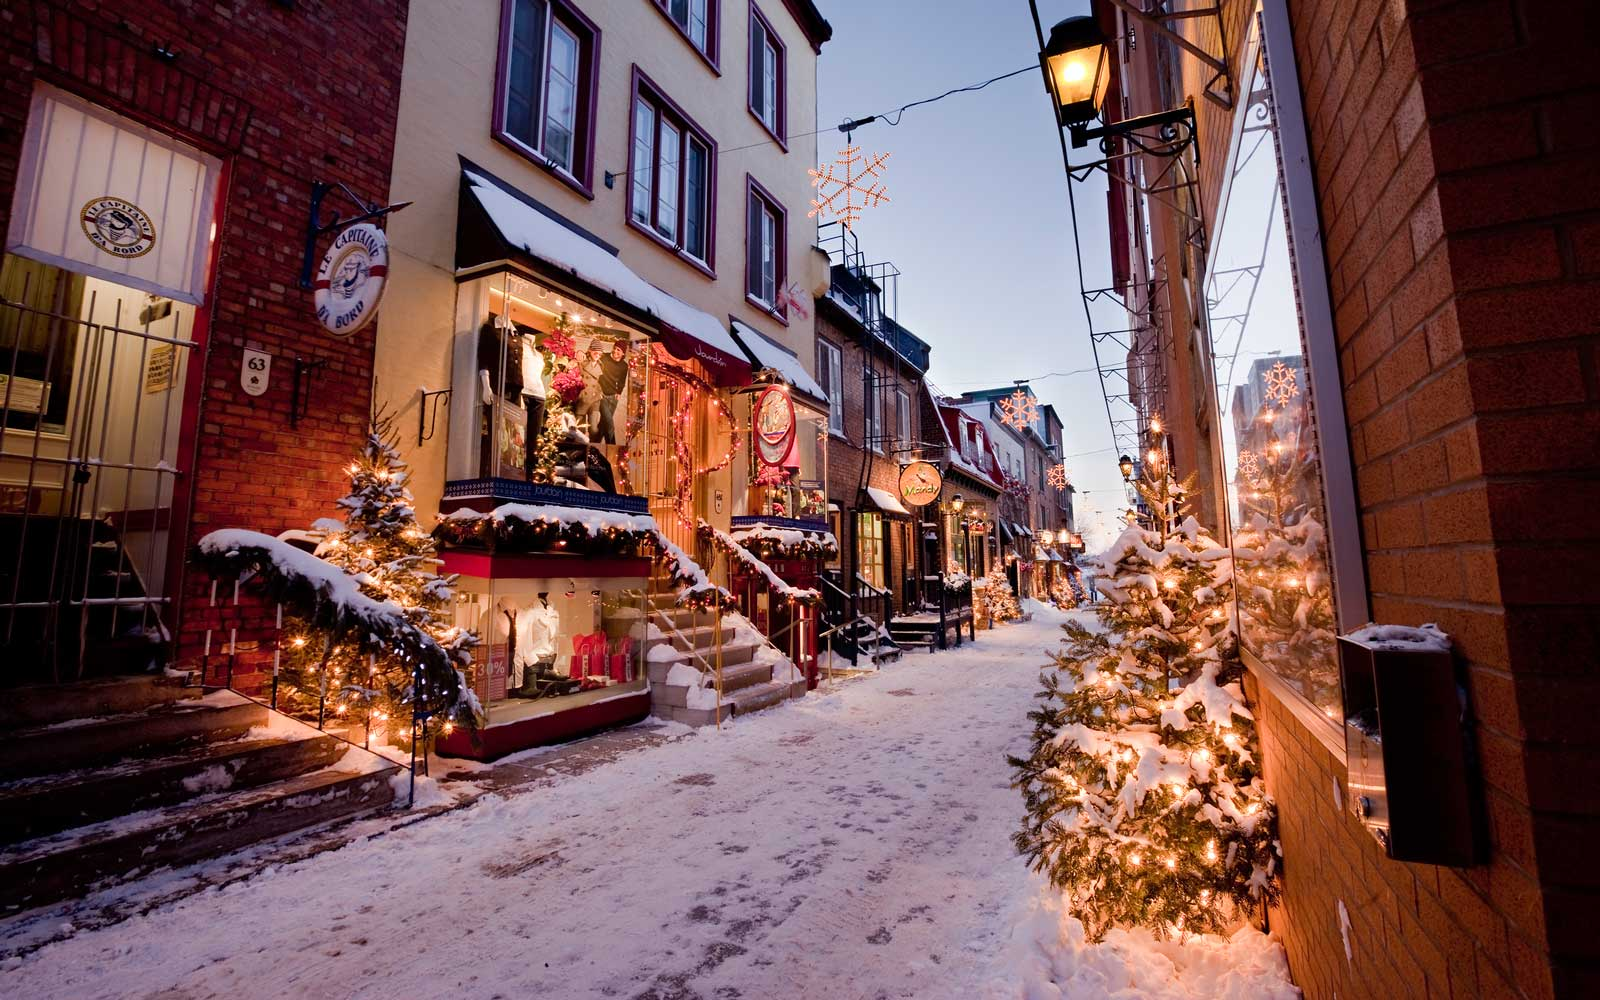 This Neighborhood in Canada Looks Like Something Straight Out of a Holiday Movie